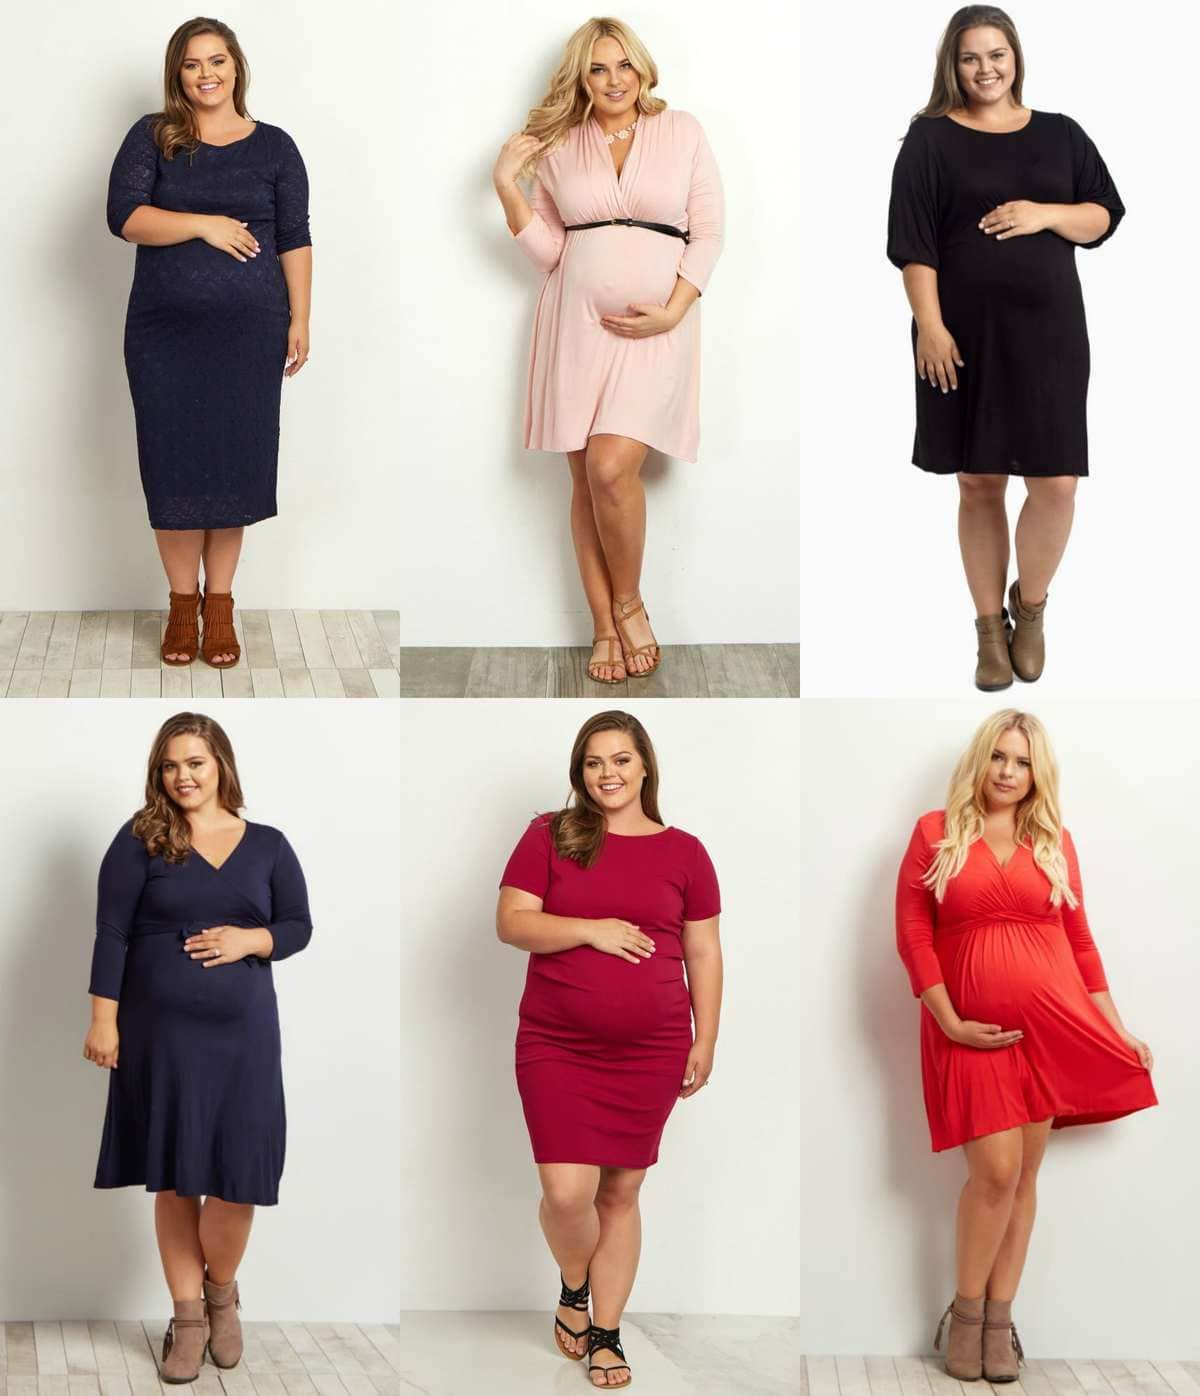 plus size maternity clothing for work - wardrobe oxygen | Plus Size Maternity Work Clothes featured by popular DC curvy fashion blogger, Wardrobe Oxygen